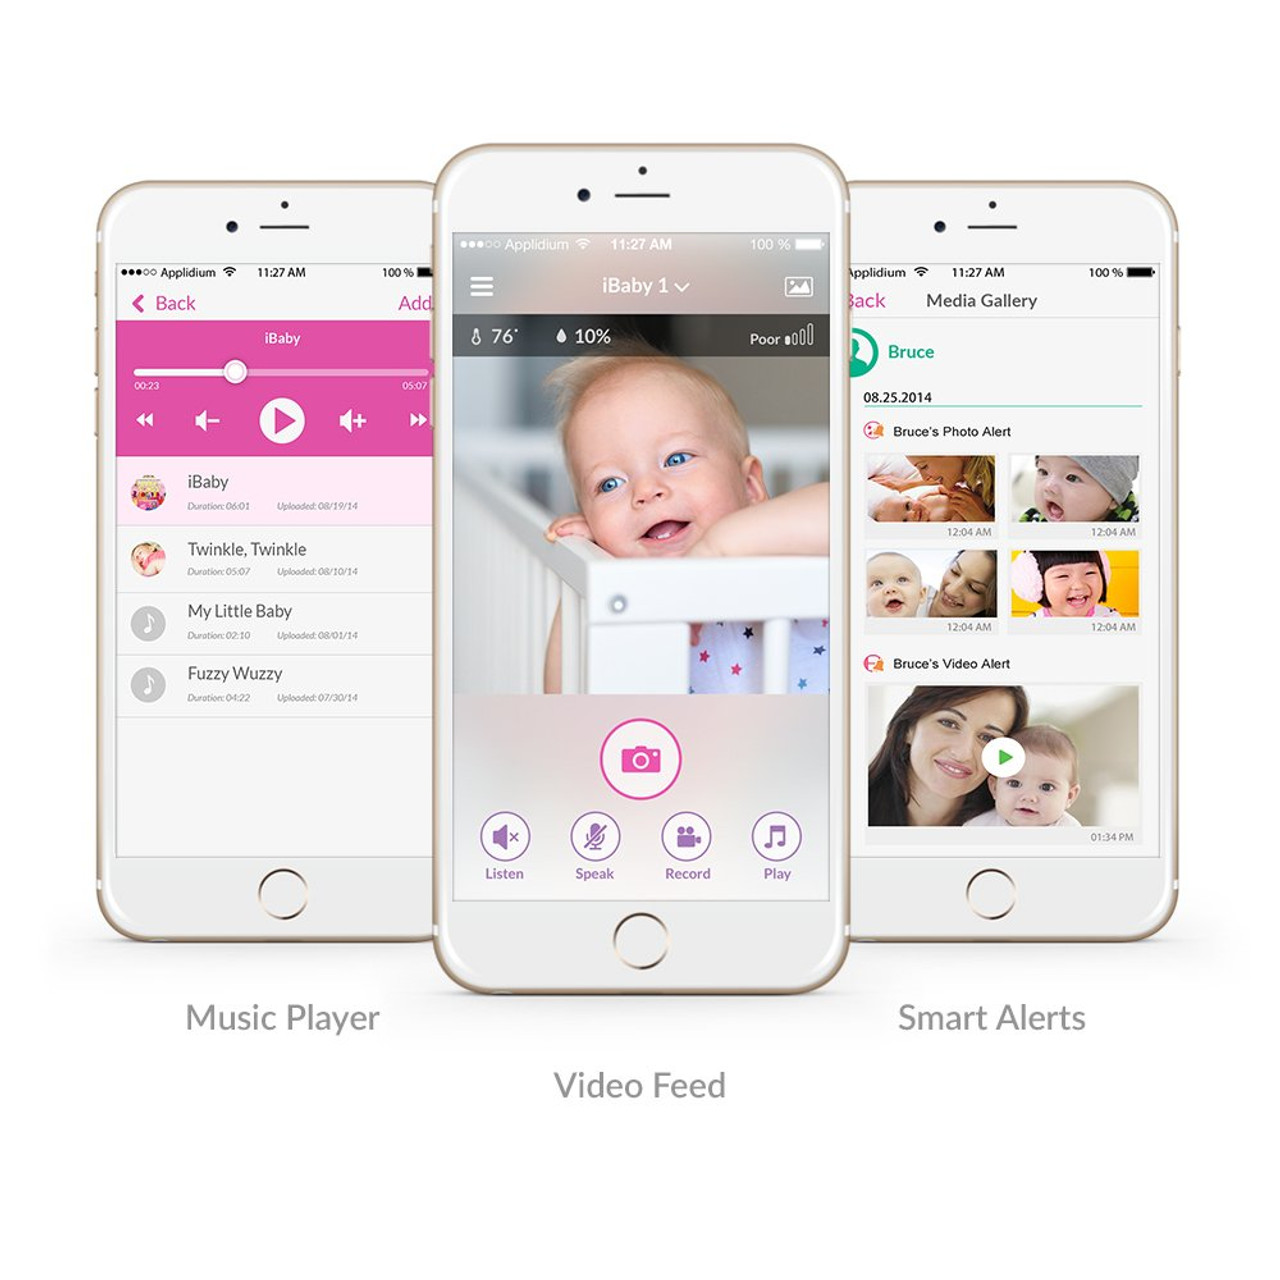 Smart WiFi Baby Monitor M7 Lite, 1080P Full HD Camera, Two Way Talk, Temperature Sensor, Night Vision, Wake Up and Bedtime Music, Remote Pan and Tilt with Smartphone App for Android and iOS